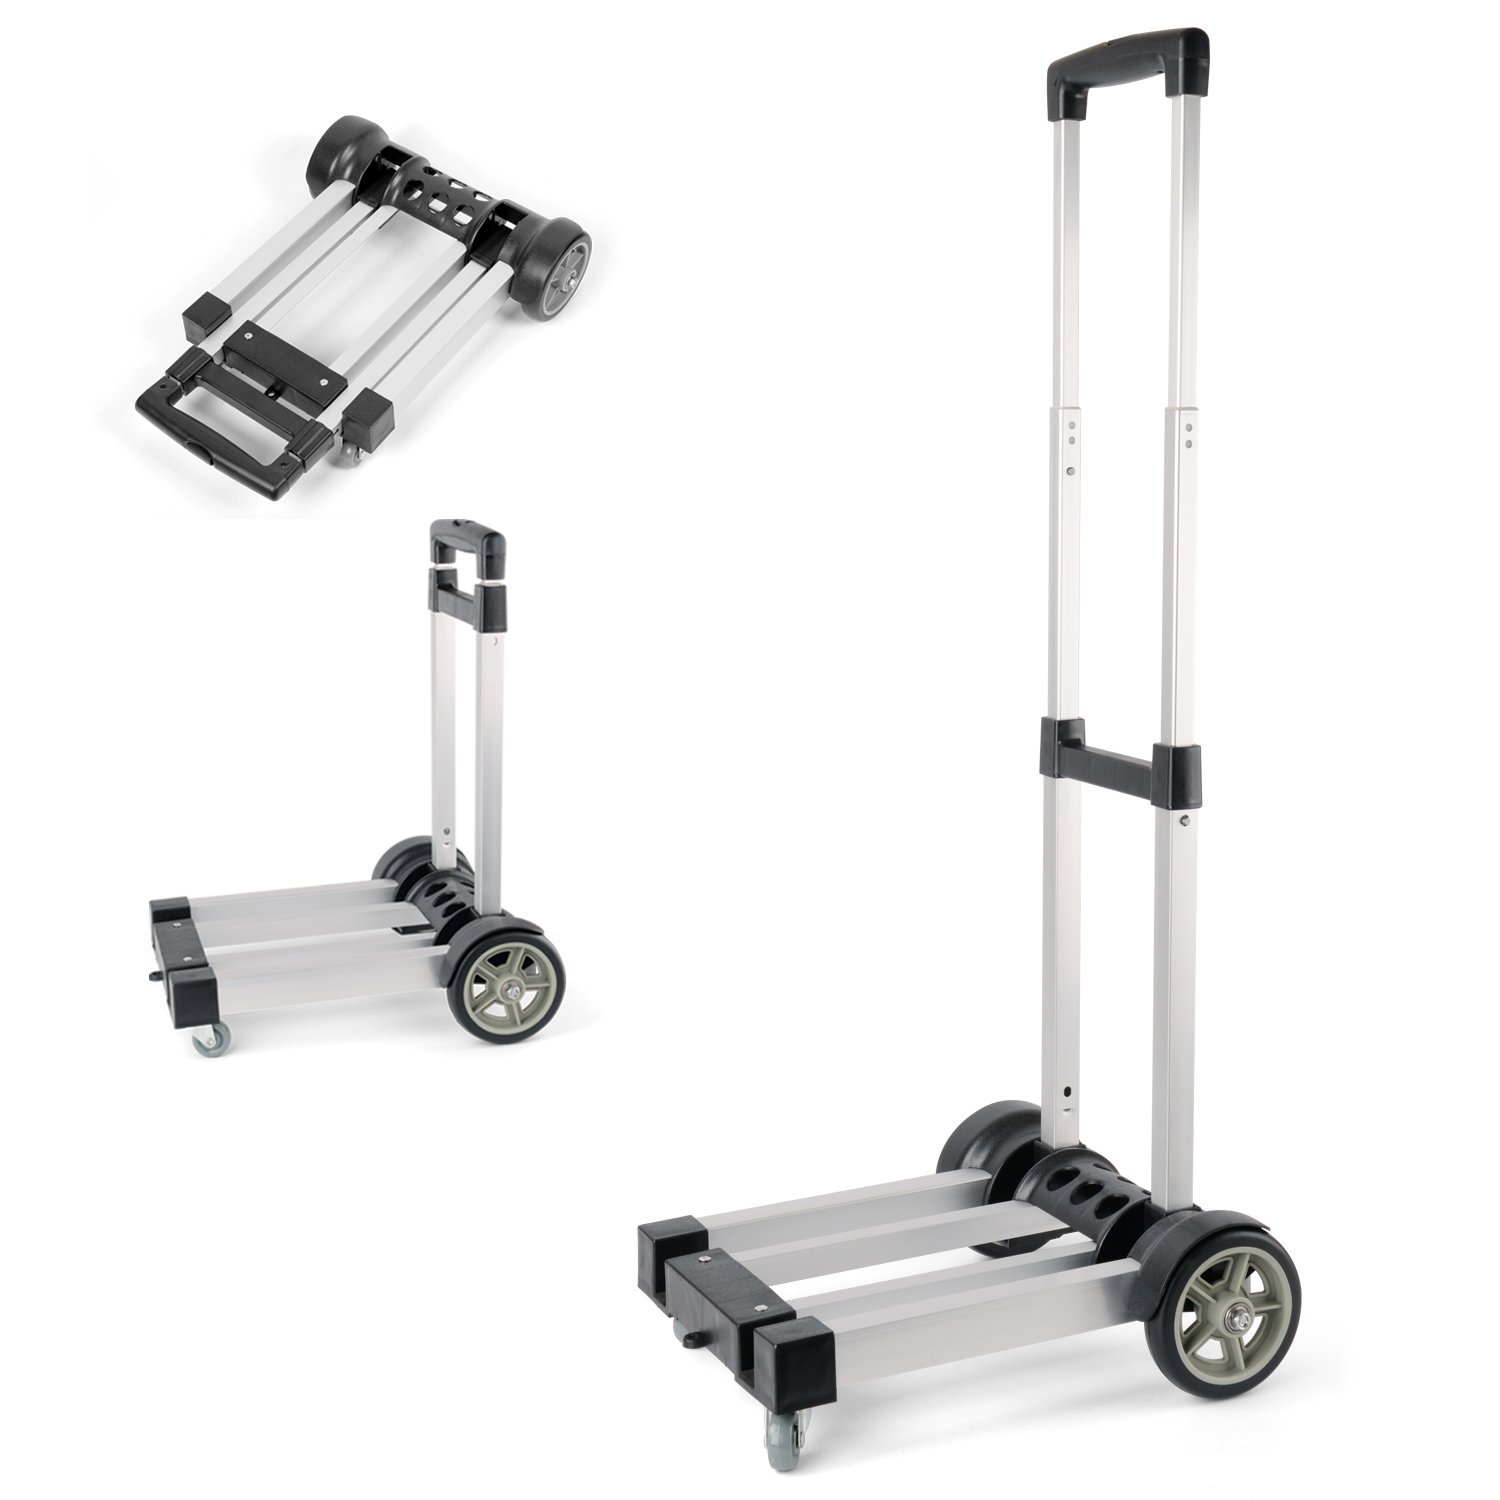 Waygo Aluminum Folding Hand Truck Light Weight Foldable Dolly Folding Cart with Wheels for Cargo and Shopping